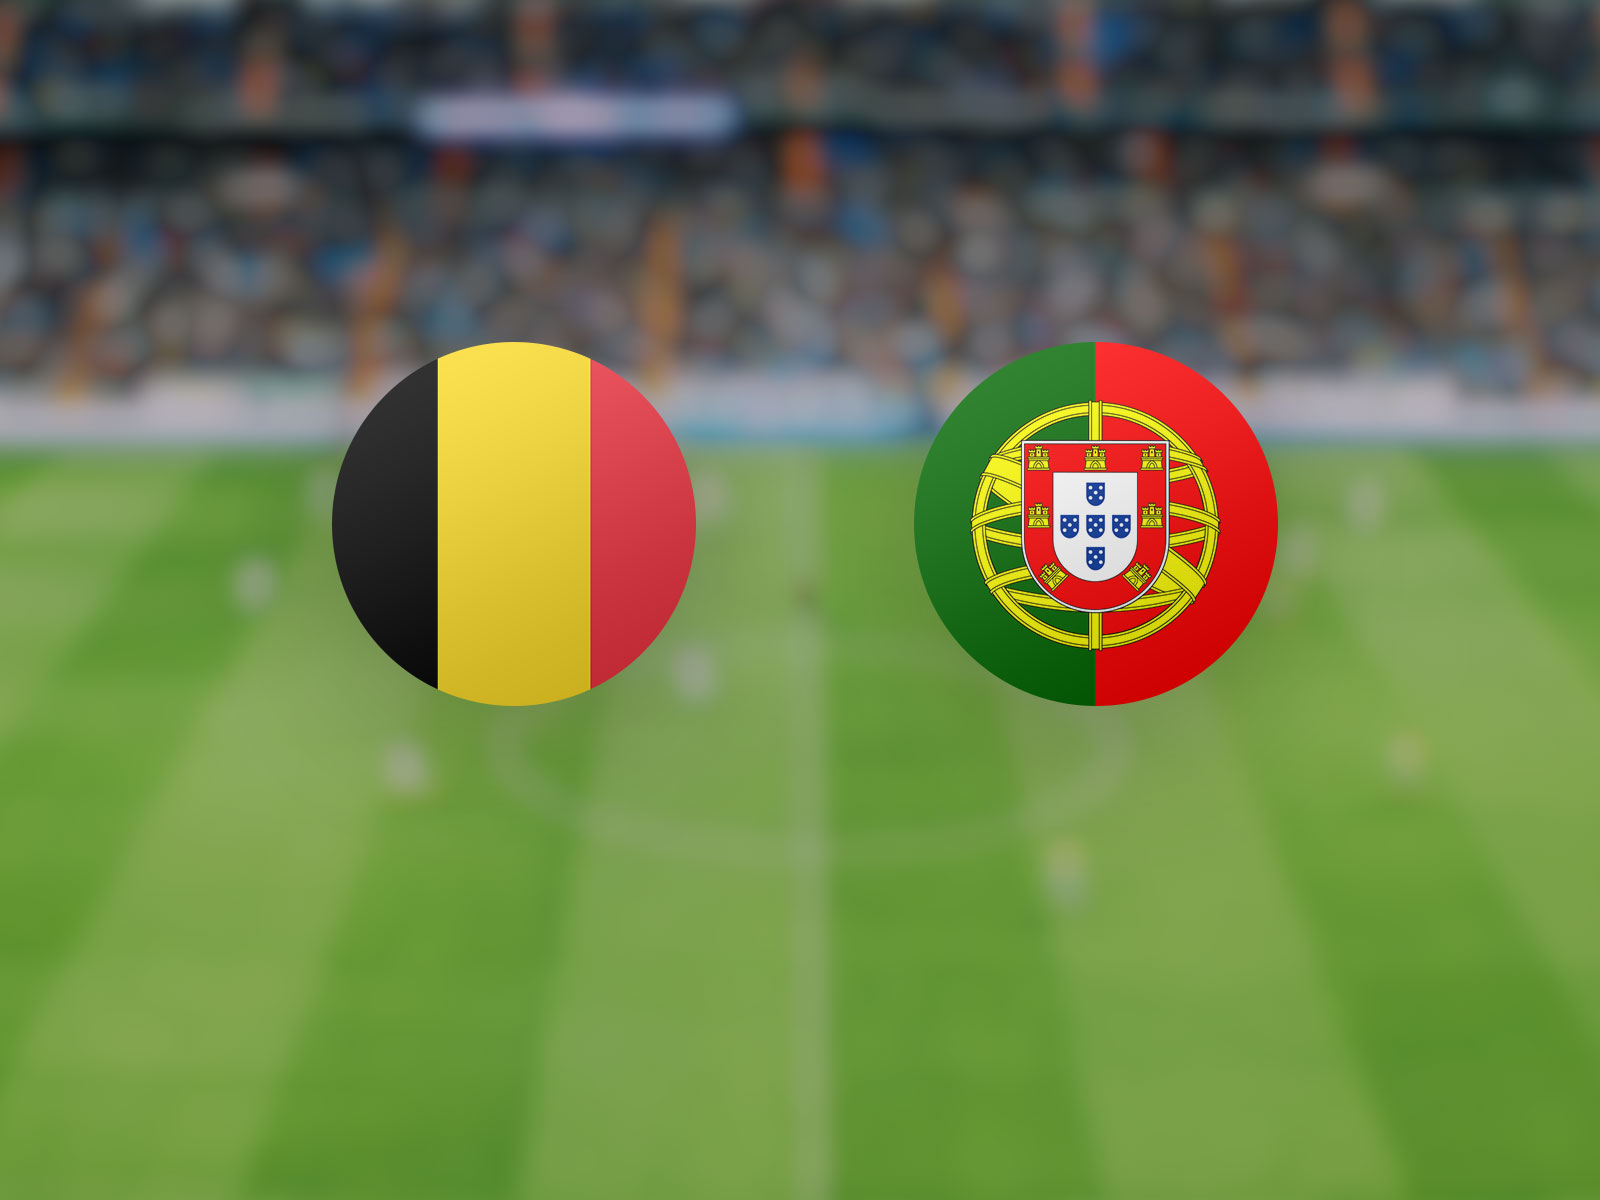 watch Belgium vs Portugal in Euro 2020 last-16 knockout rounds